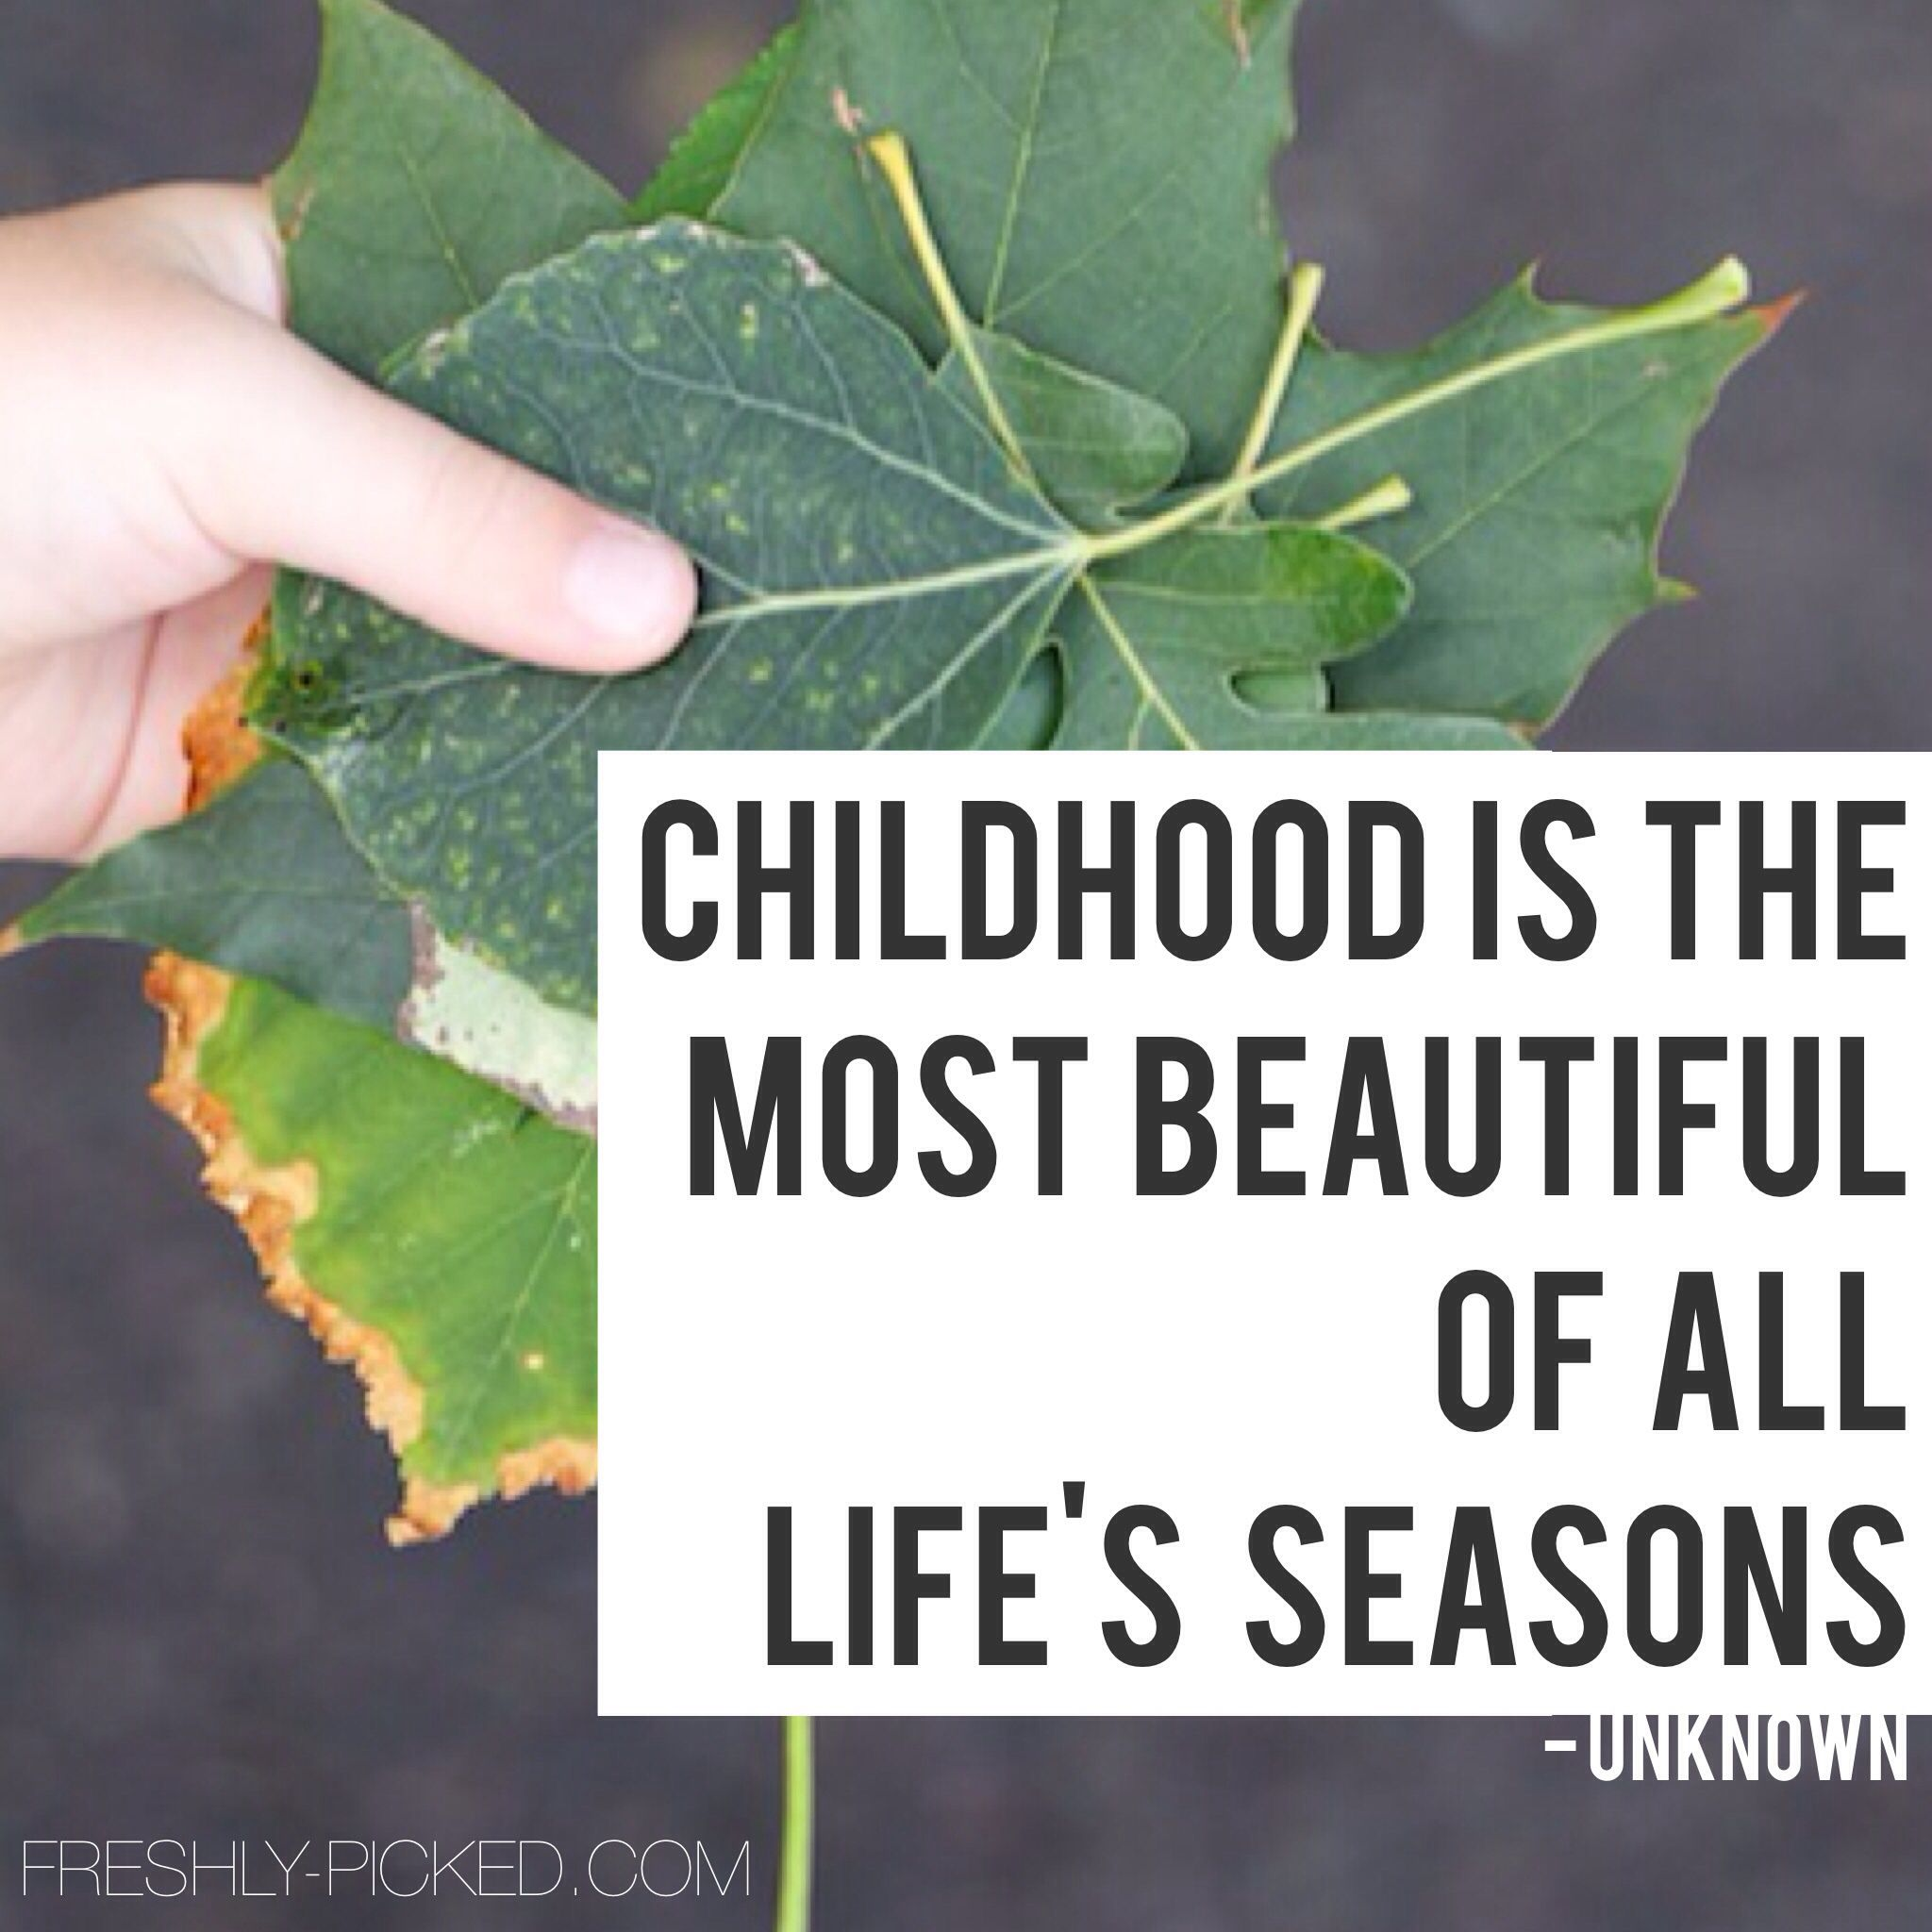 Childhood Memories Quotes And Sayings. QuotesGram